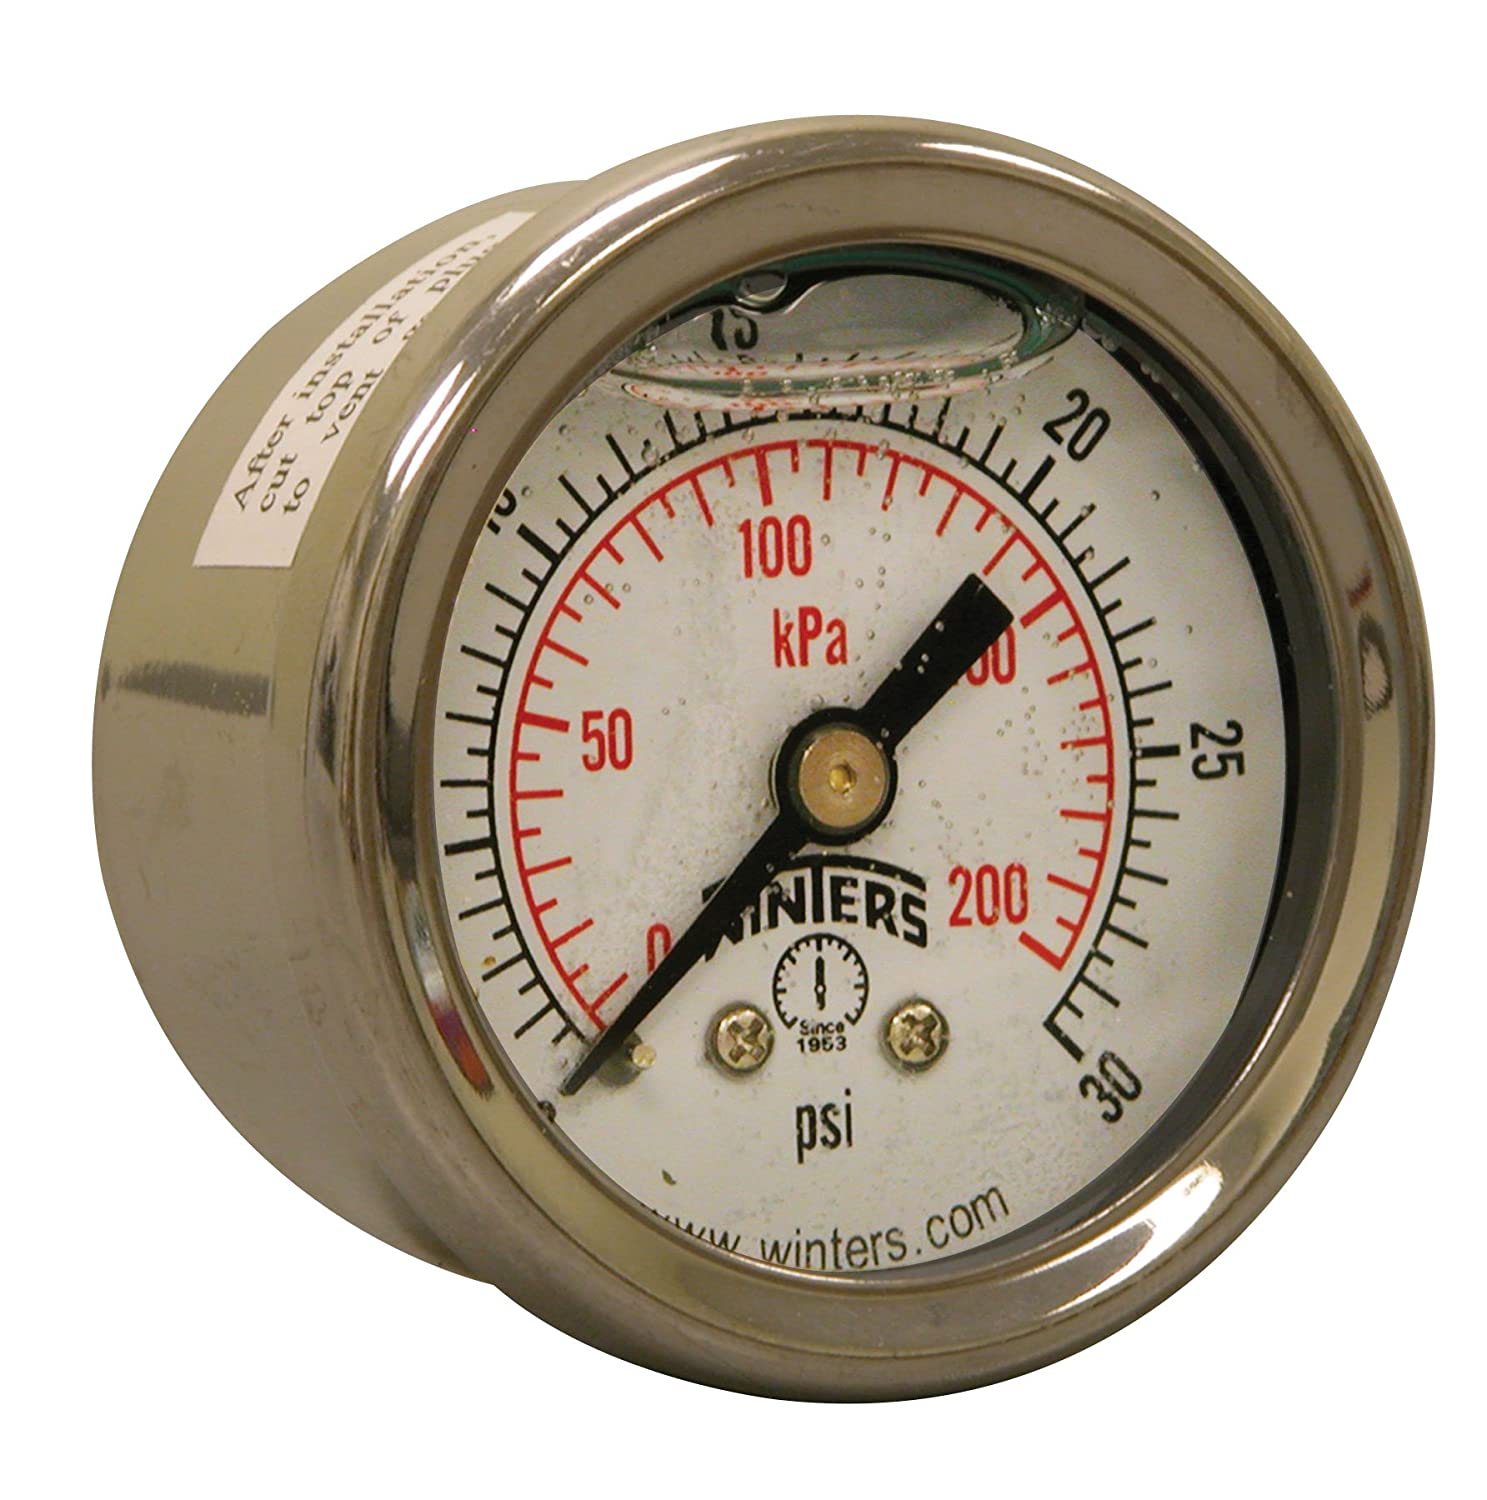 Winters PFQ Series Stainless Steel 304 Dual Scale Liquid Filled Pressure Gauge with st/st Internals, 0-30 psi/kpa, 2-1/2